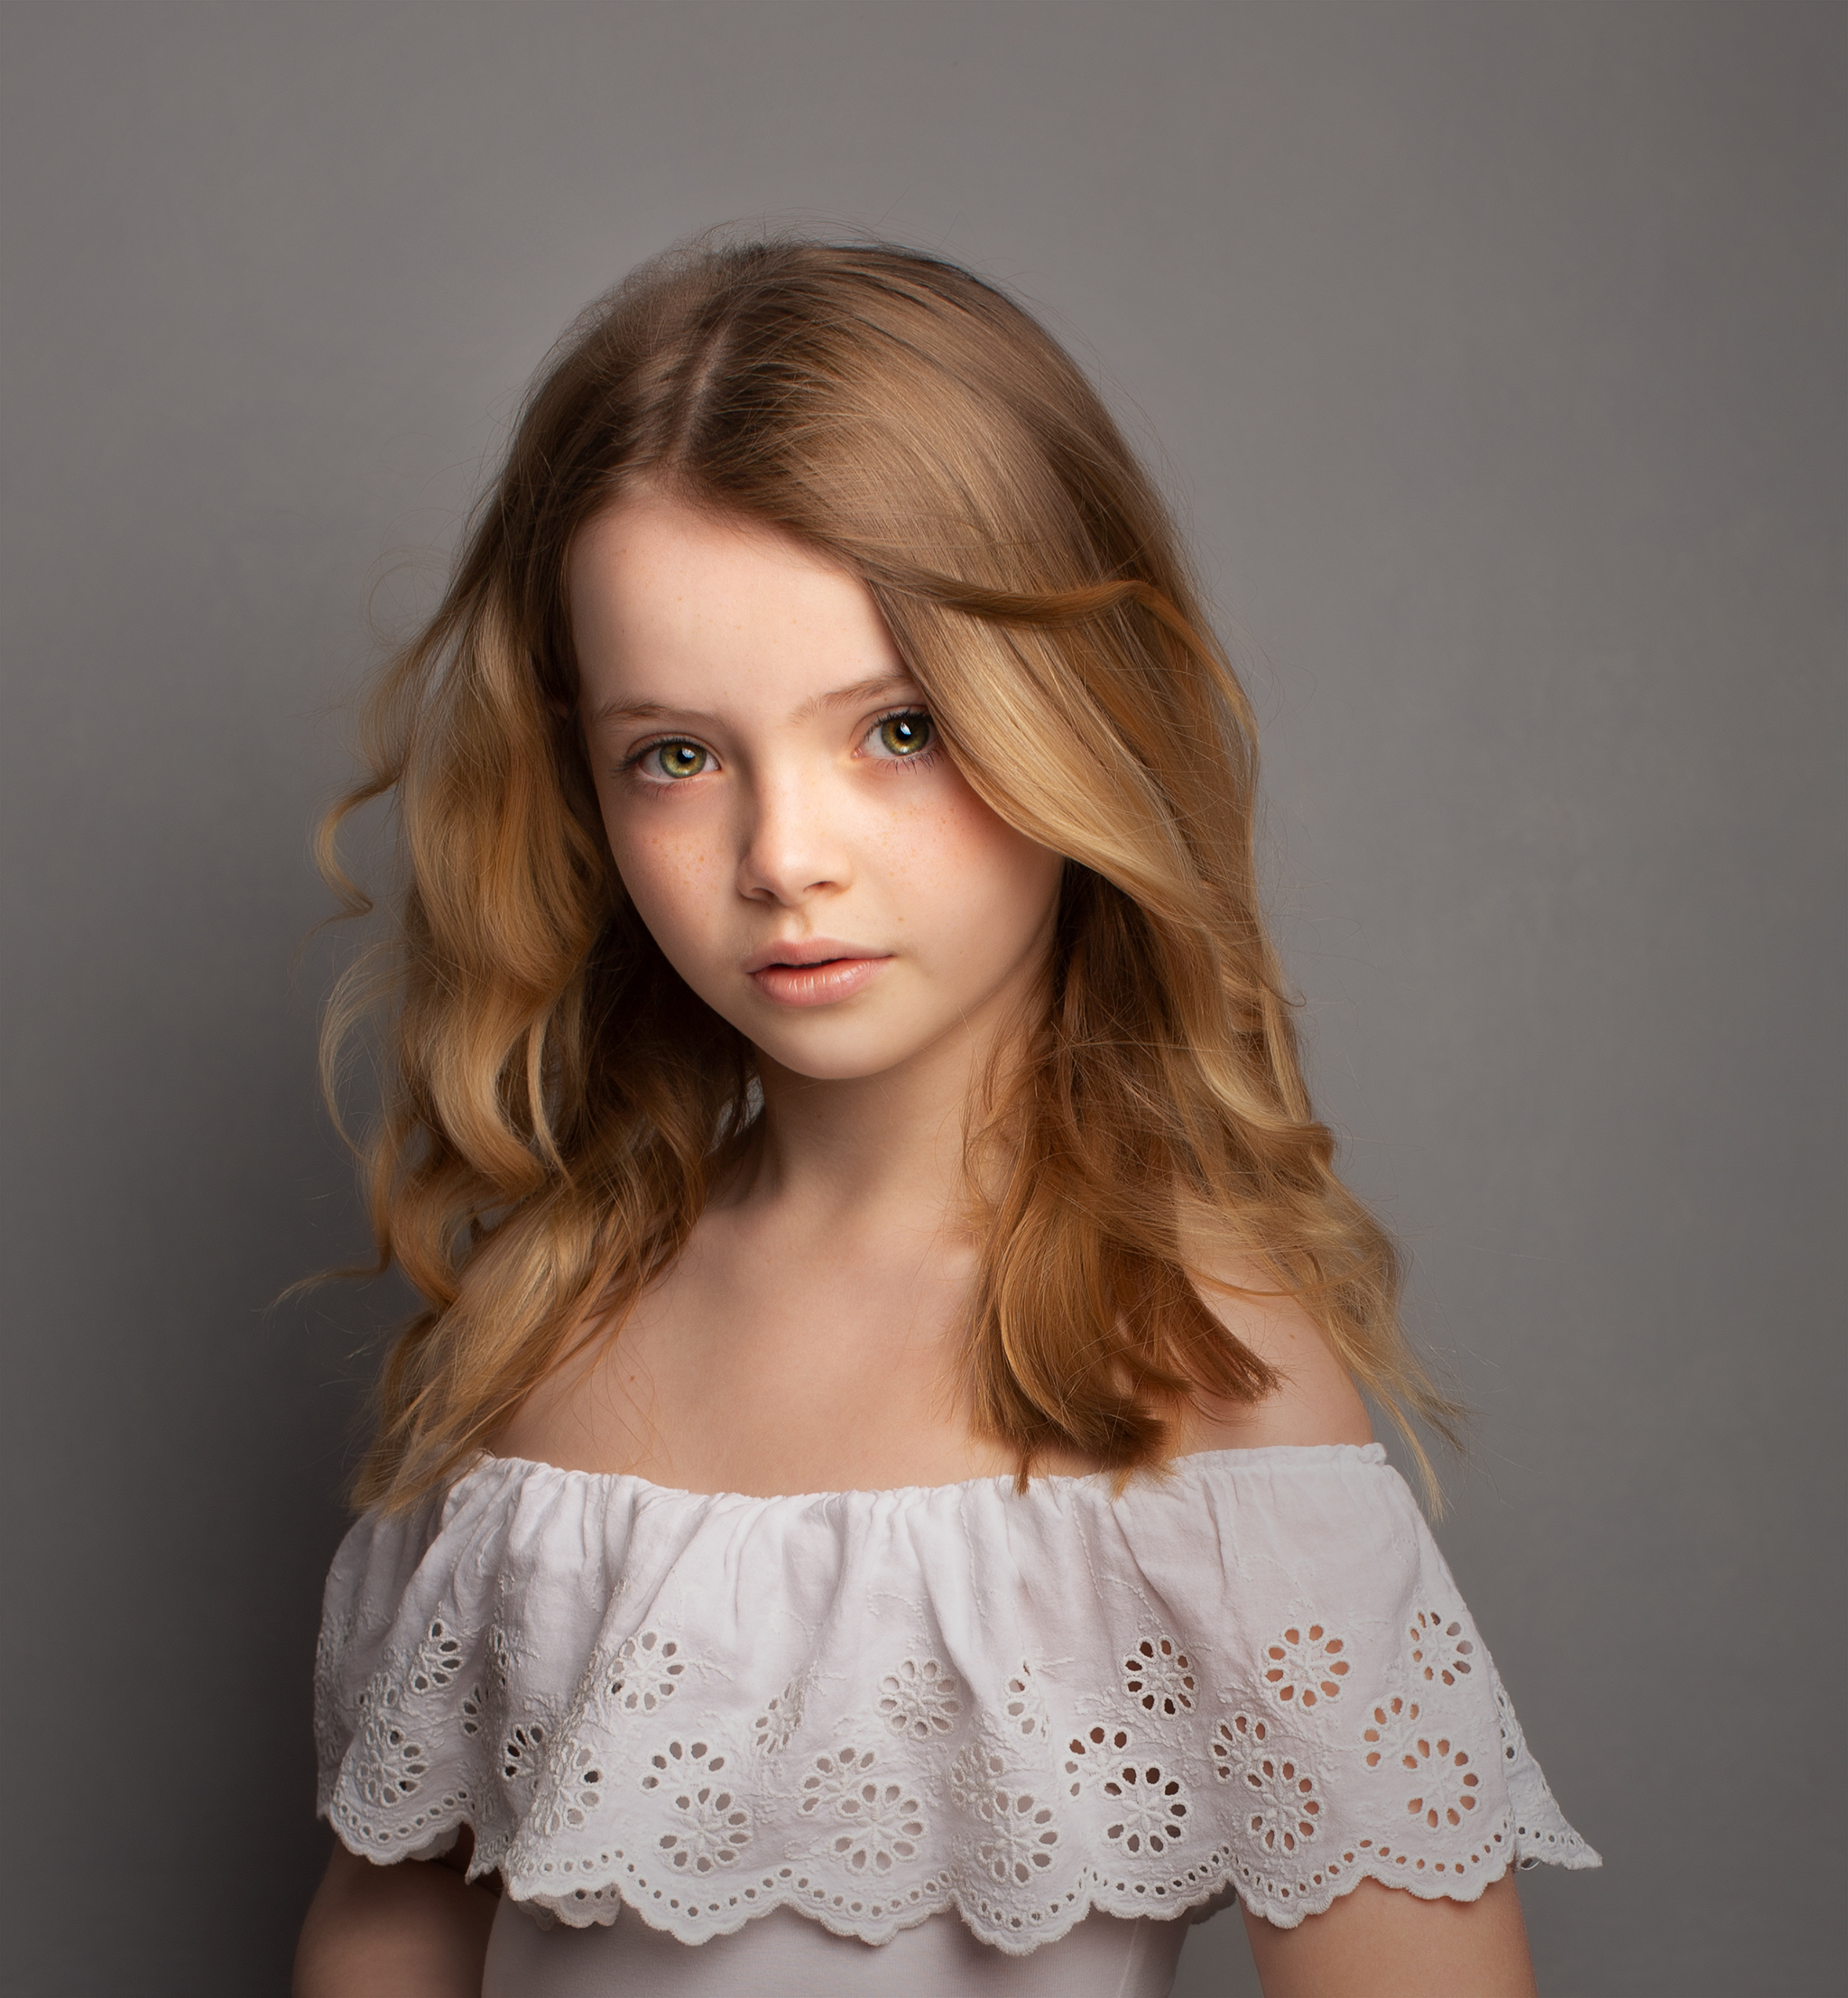 Elizabethg_fineart_photography_portrait_photographer_kingslangley_hertfordshire_brooke_bonnieandbetty_002.jpg